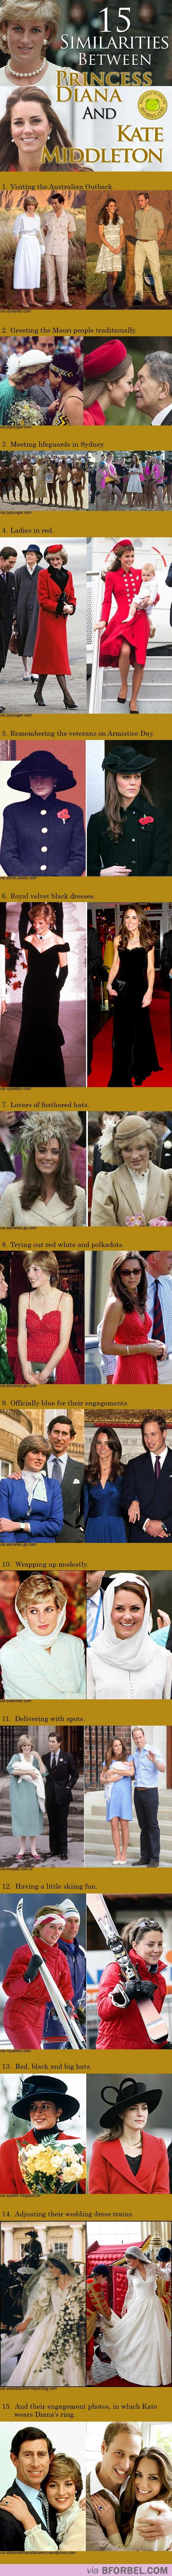 15 Similarities Between Princess Diana And Kate. I don't think it's just coincidence - William would naturally choose someone so similar.